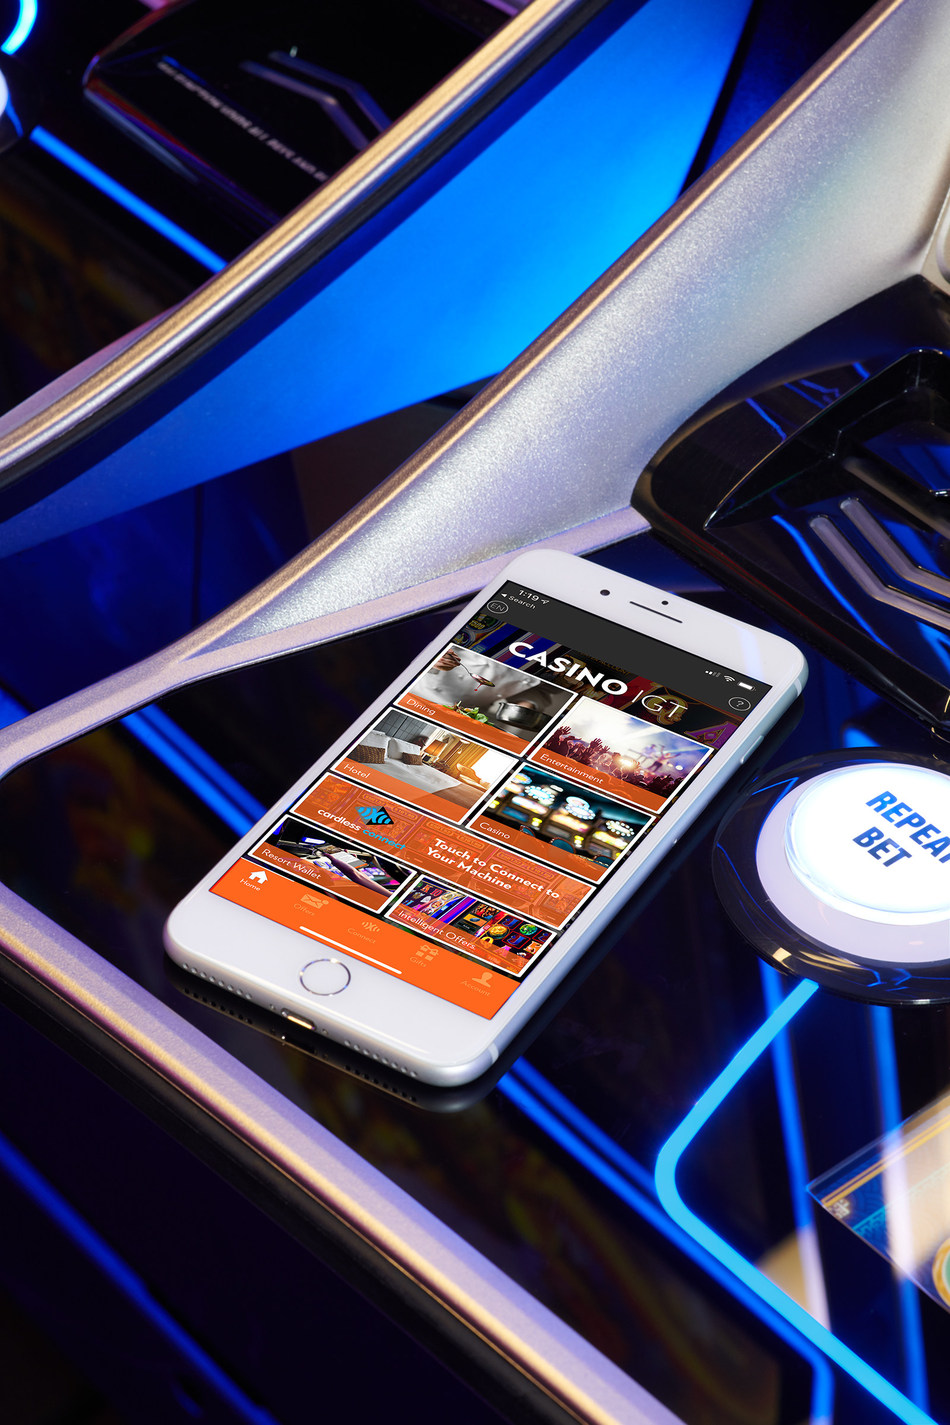 Part of IGT's award-winning ADVANTAGE® Systems Player Experience Product Suite, the Cardless Connect solution enables casino patrons to card in and out of a gaming session with a simple tap of their smartphone.